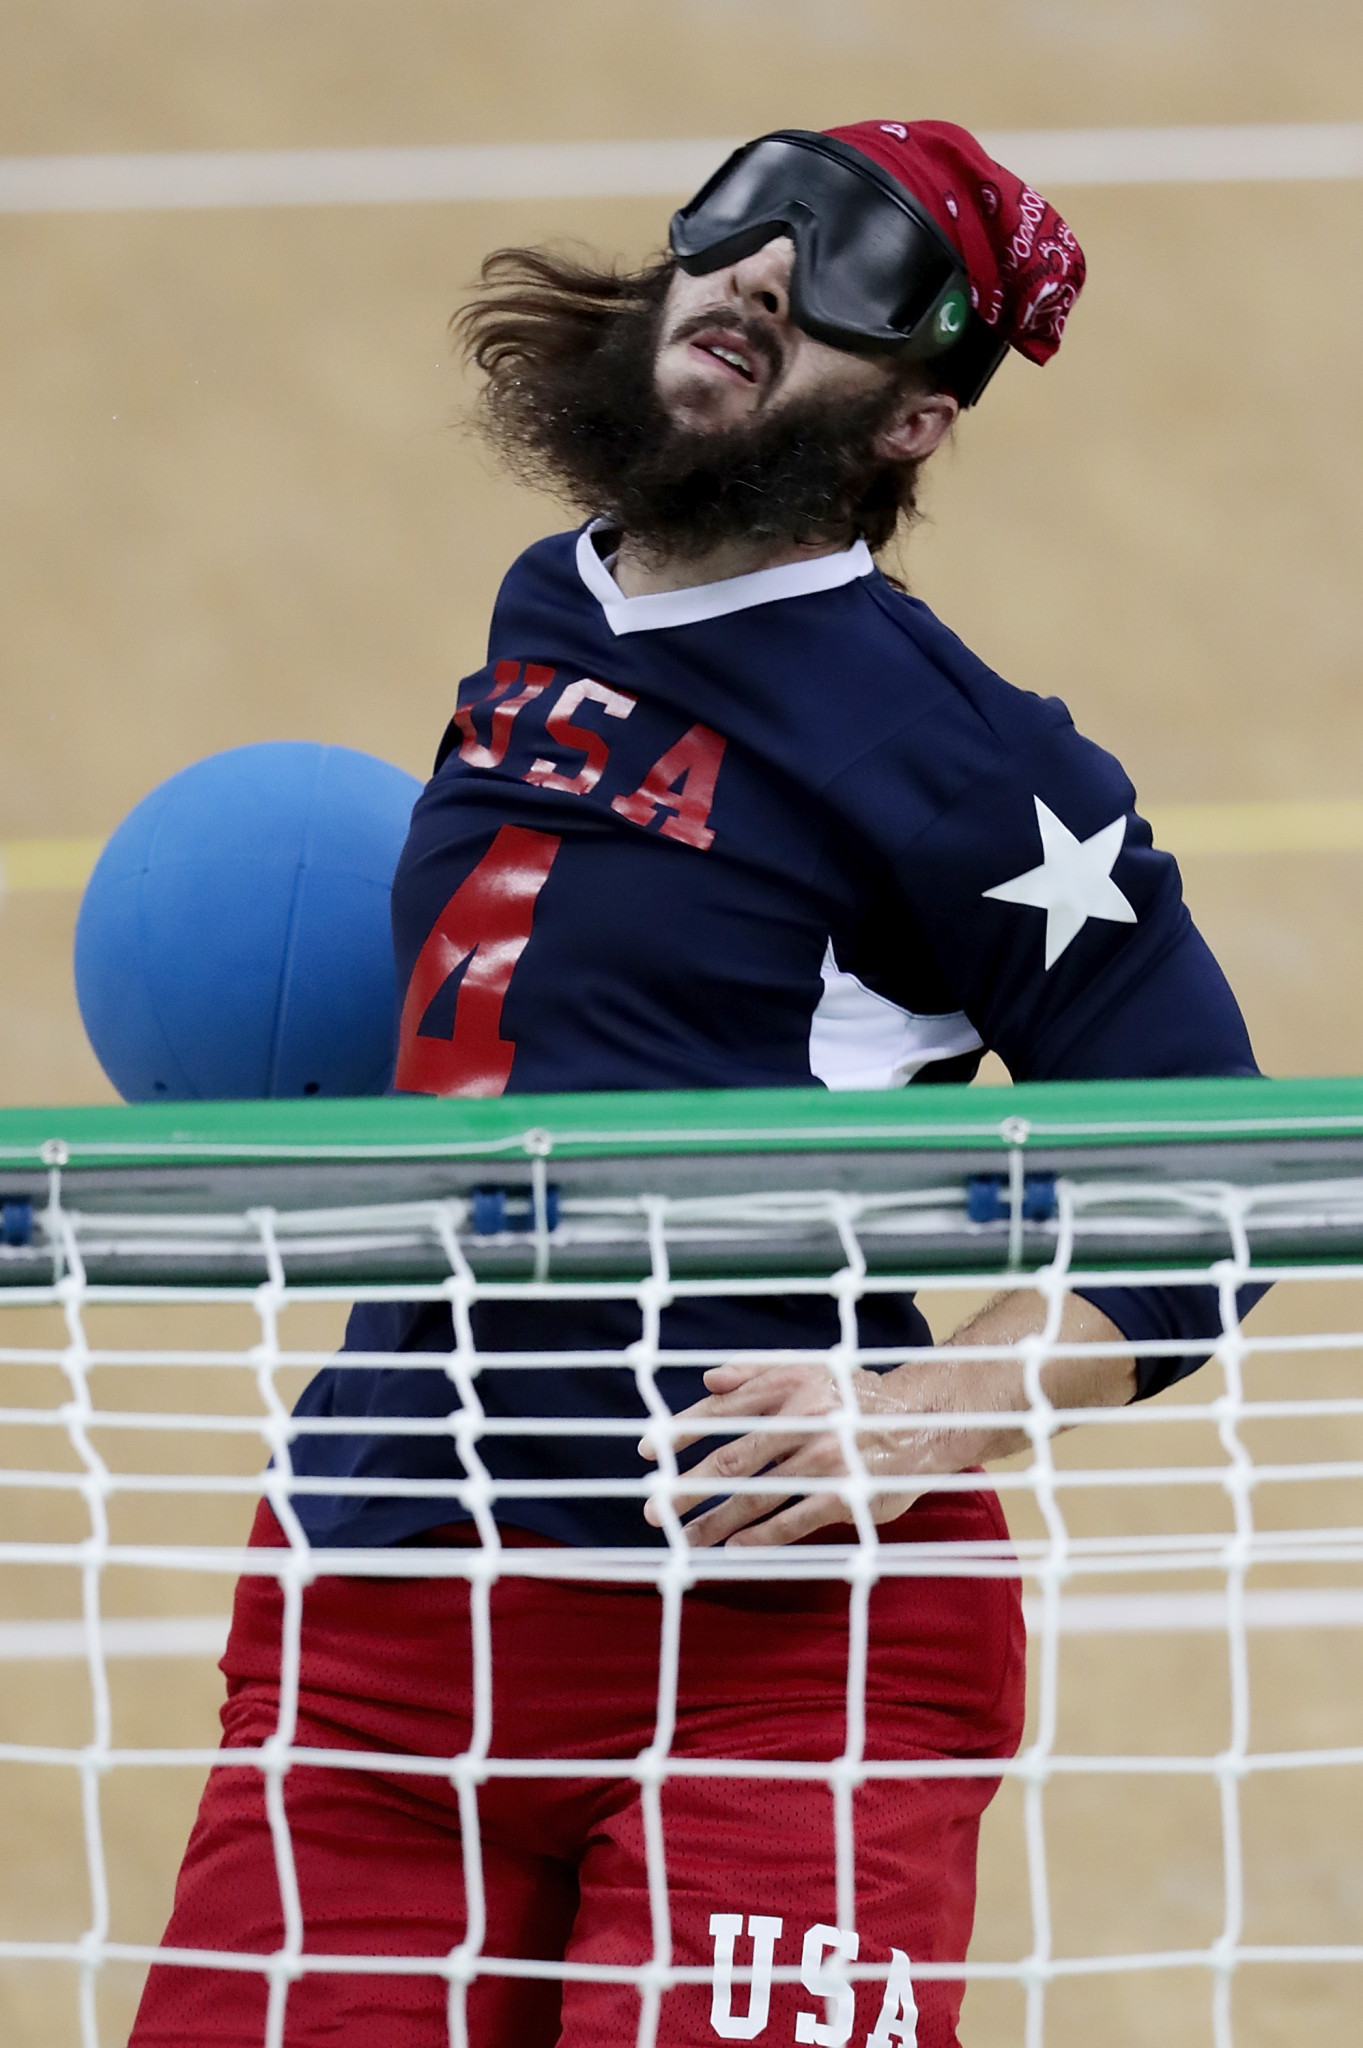 The world's best goalball teams will compete in Malmö ©Getty Images